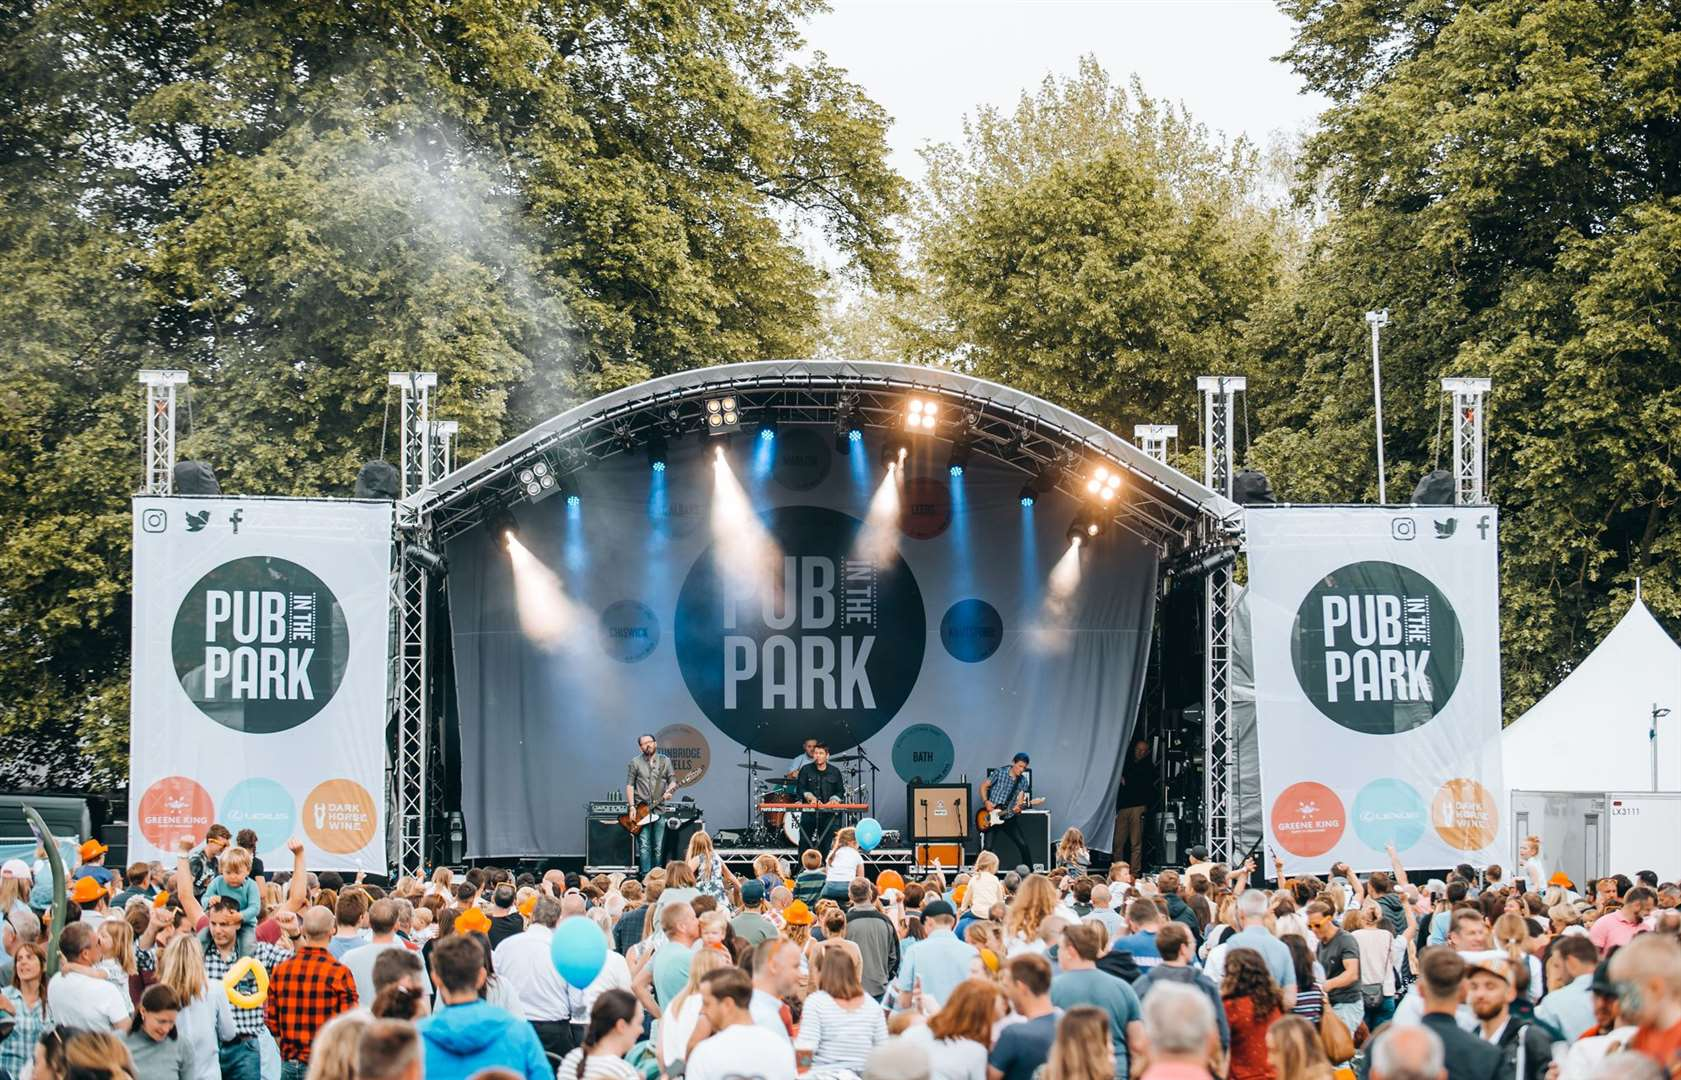 Pub in the Park will be in Tunbridge Wells Picture: Will Bailey